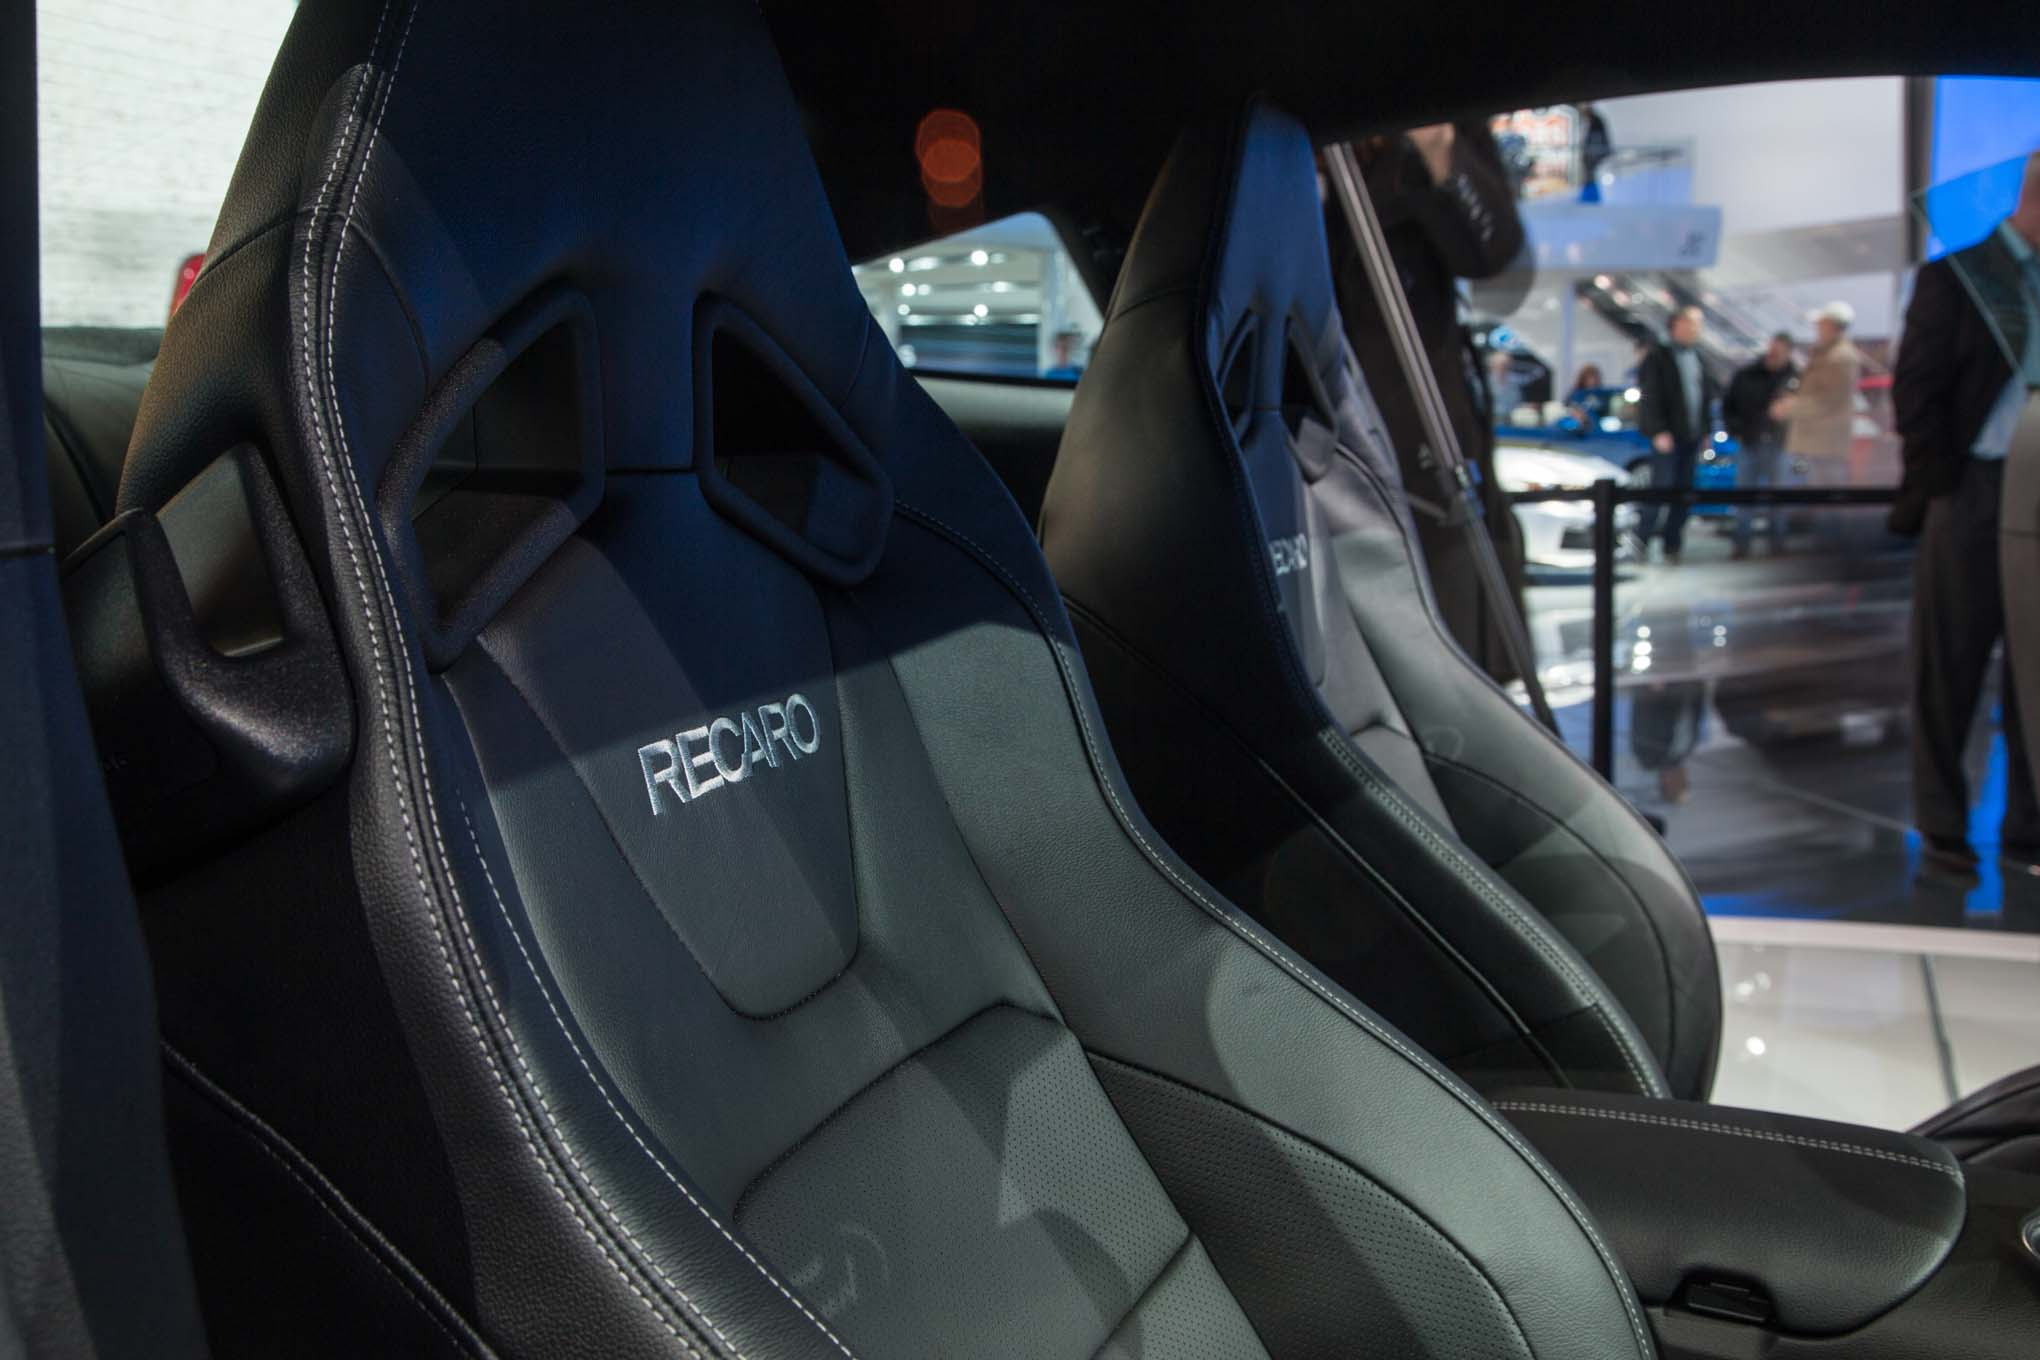 Lee Iacocca Mustang >> 2018 Ford Mustang GT Recaro Seats - Photo 220050878 - 2018 ...